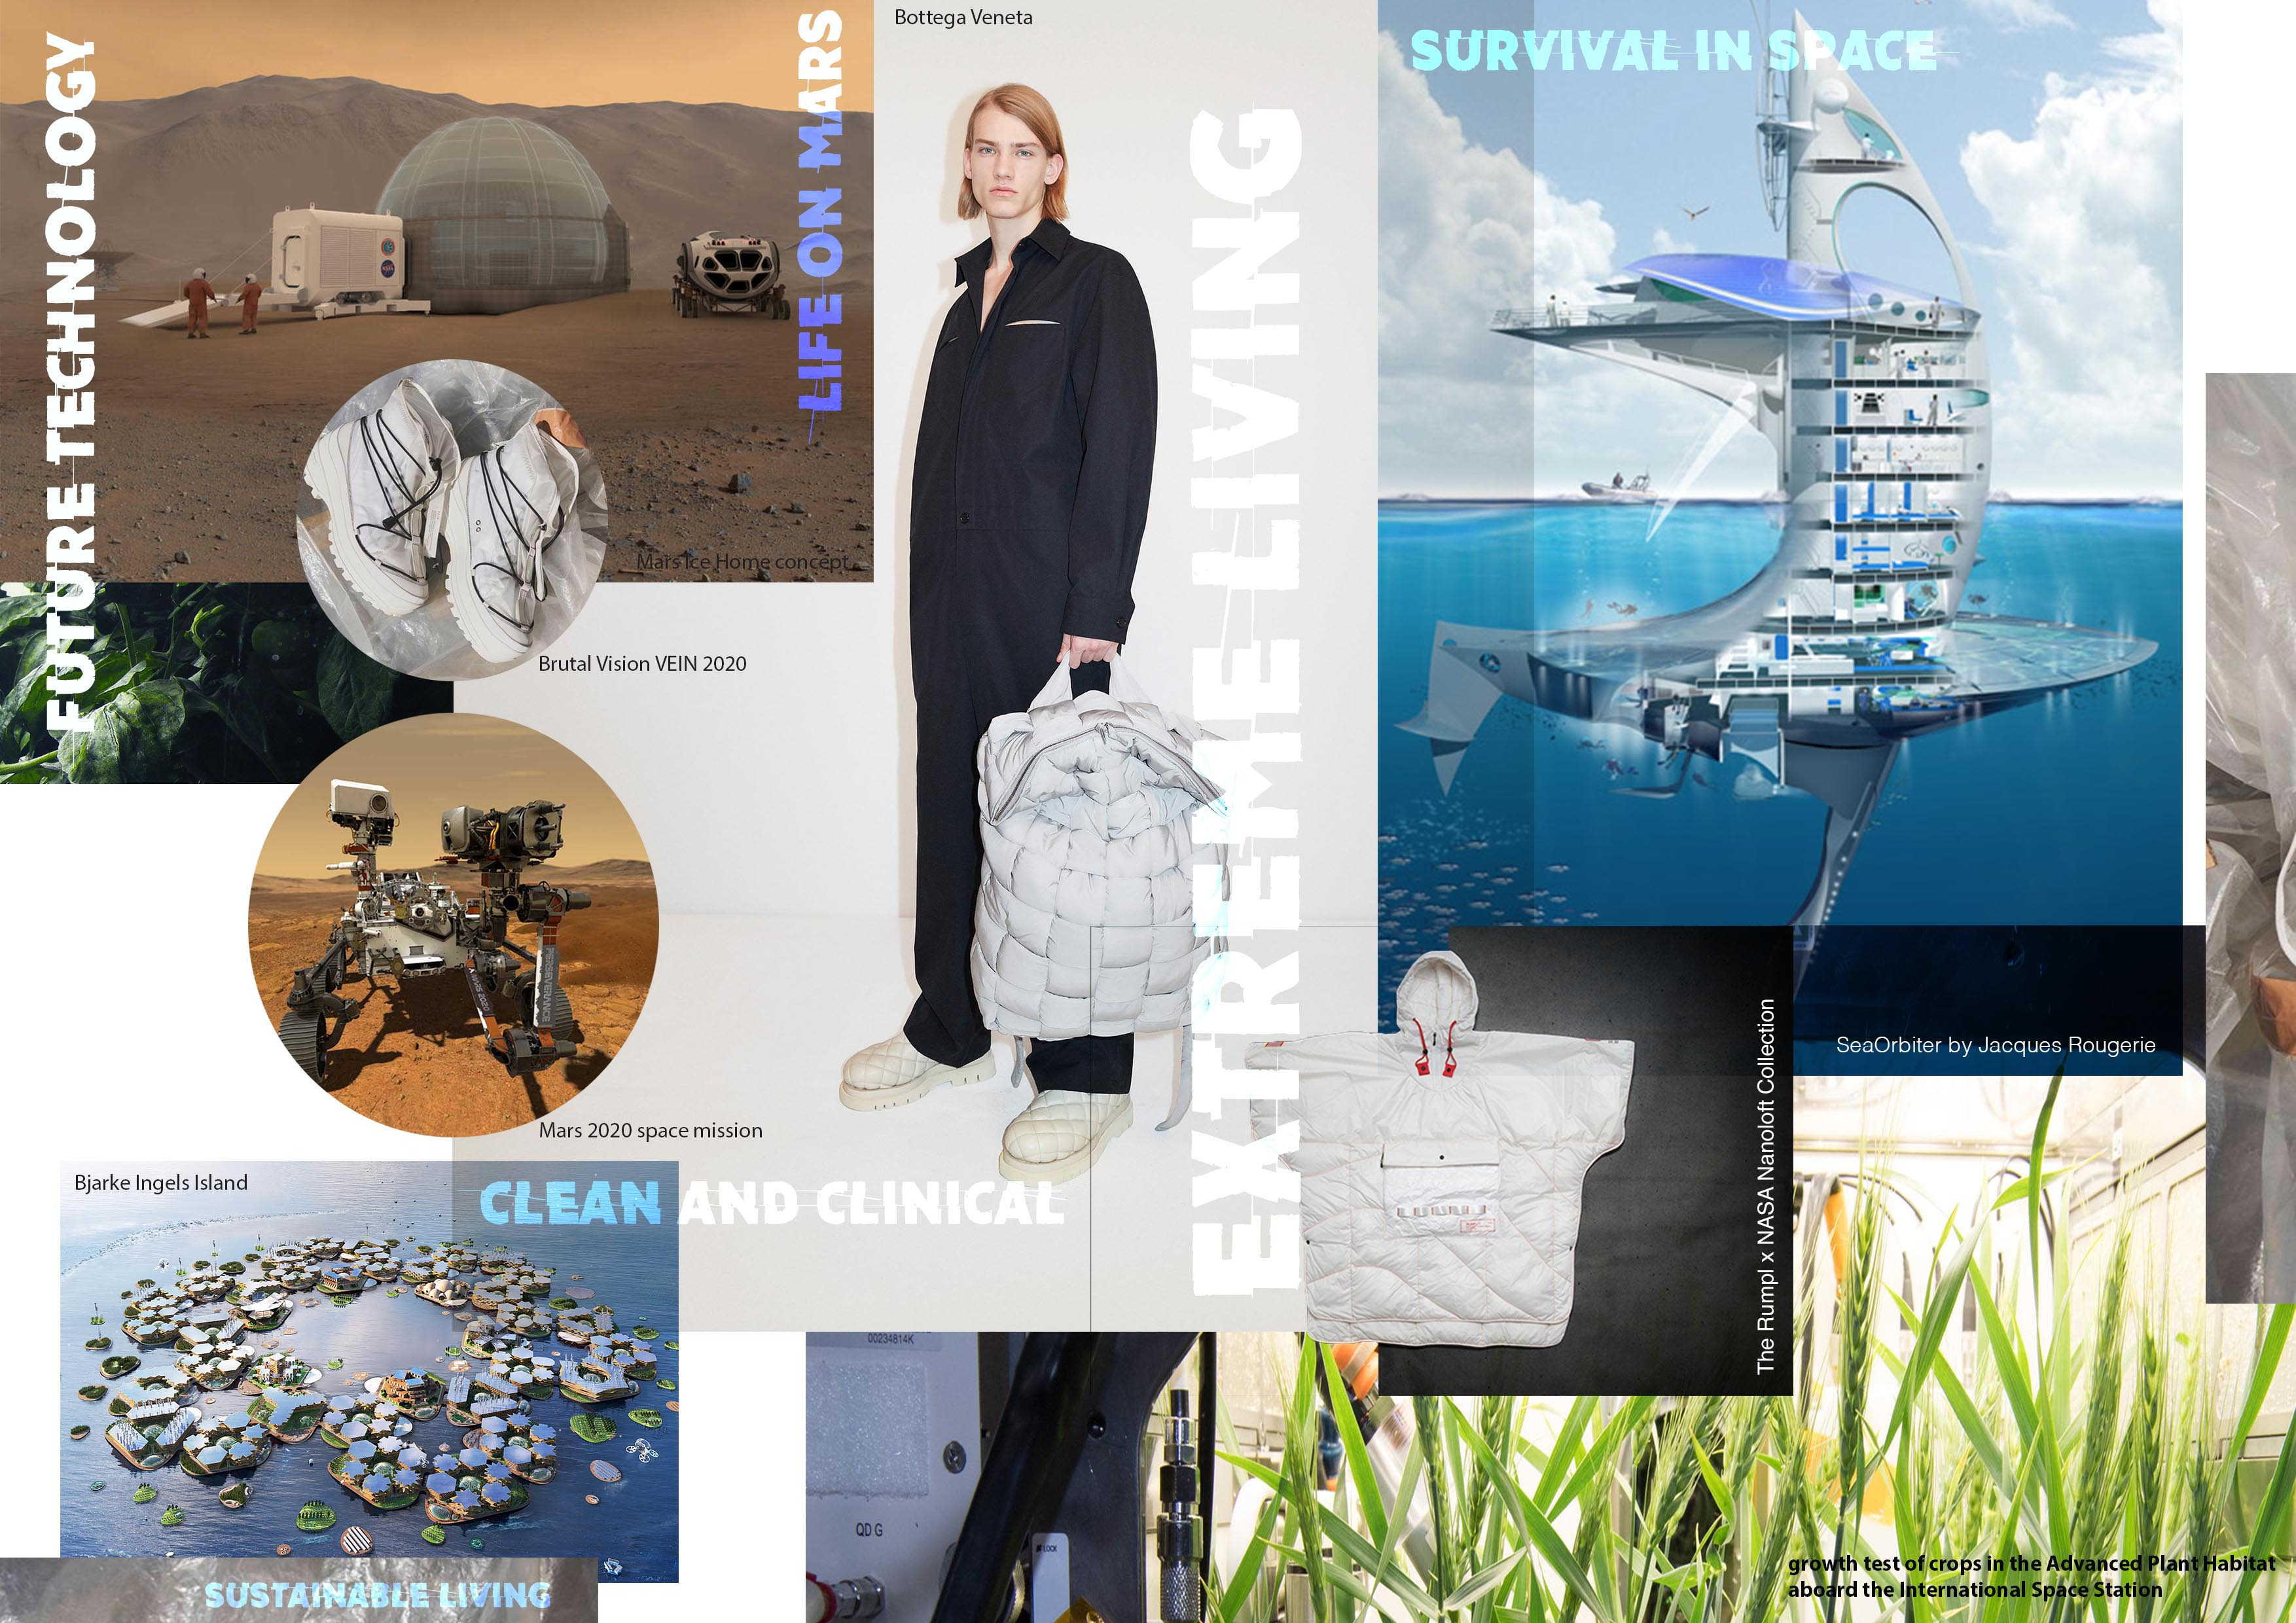 A trend board of ideas by Jane Dark for the concept of Extreme Living